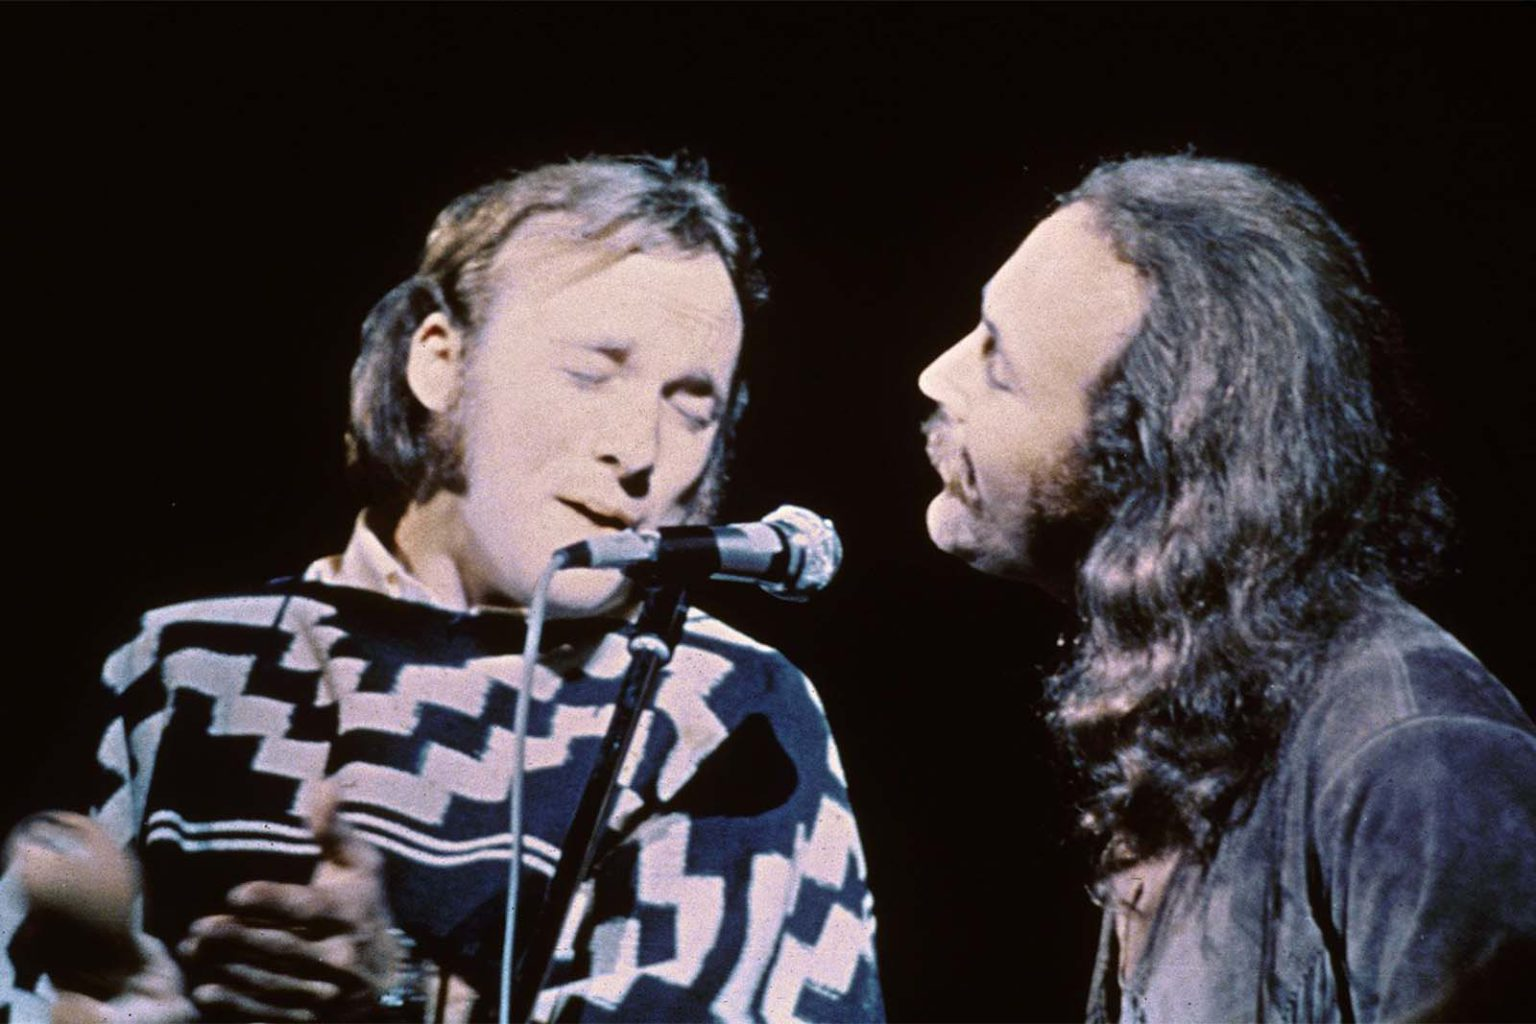 Crosby, Stills, Nash & Young - Festival Woodstock